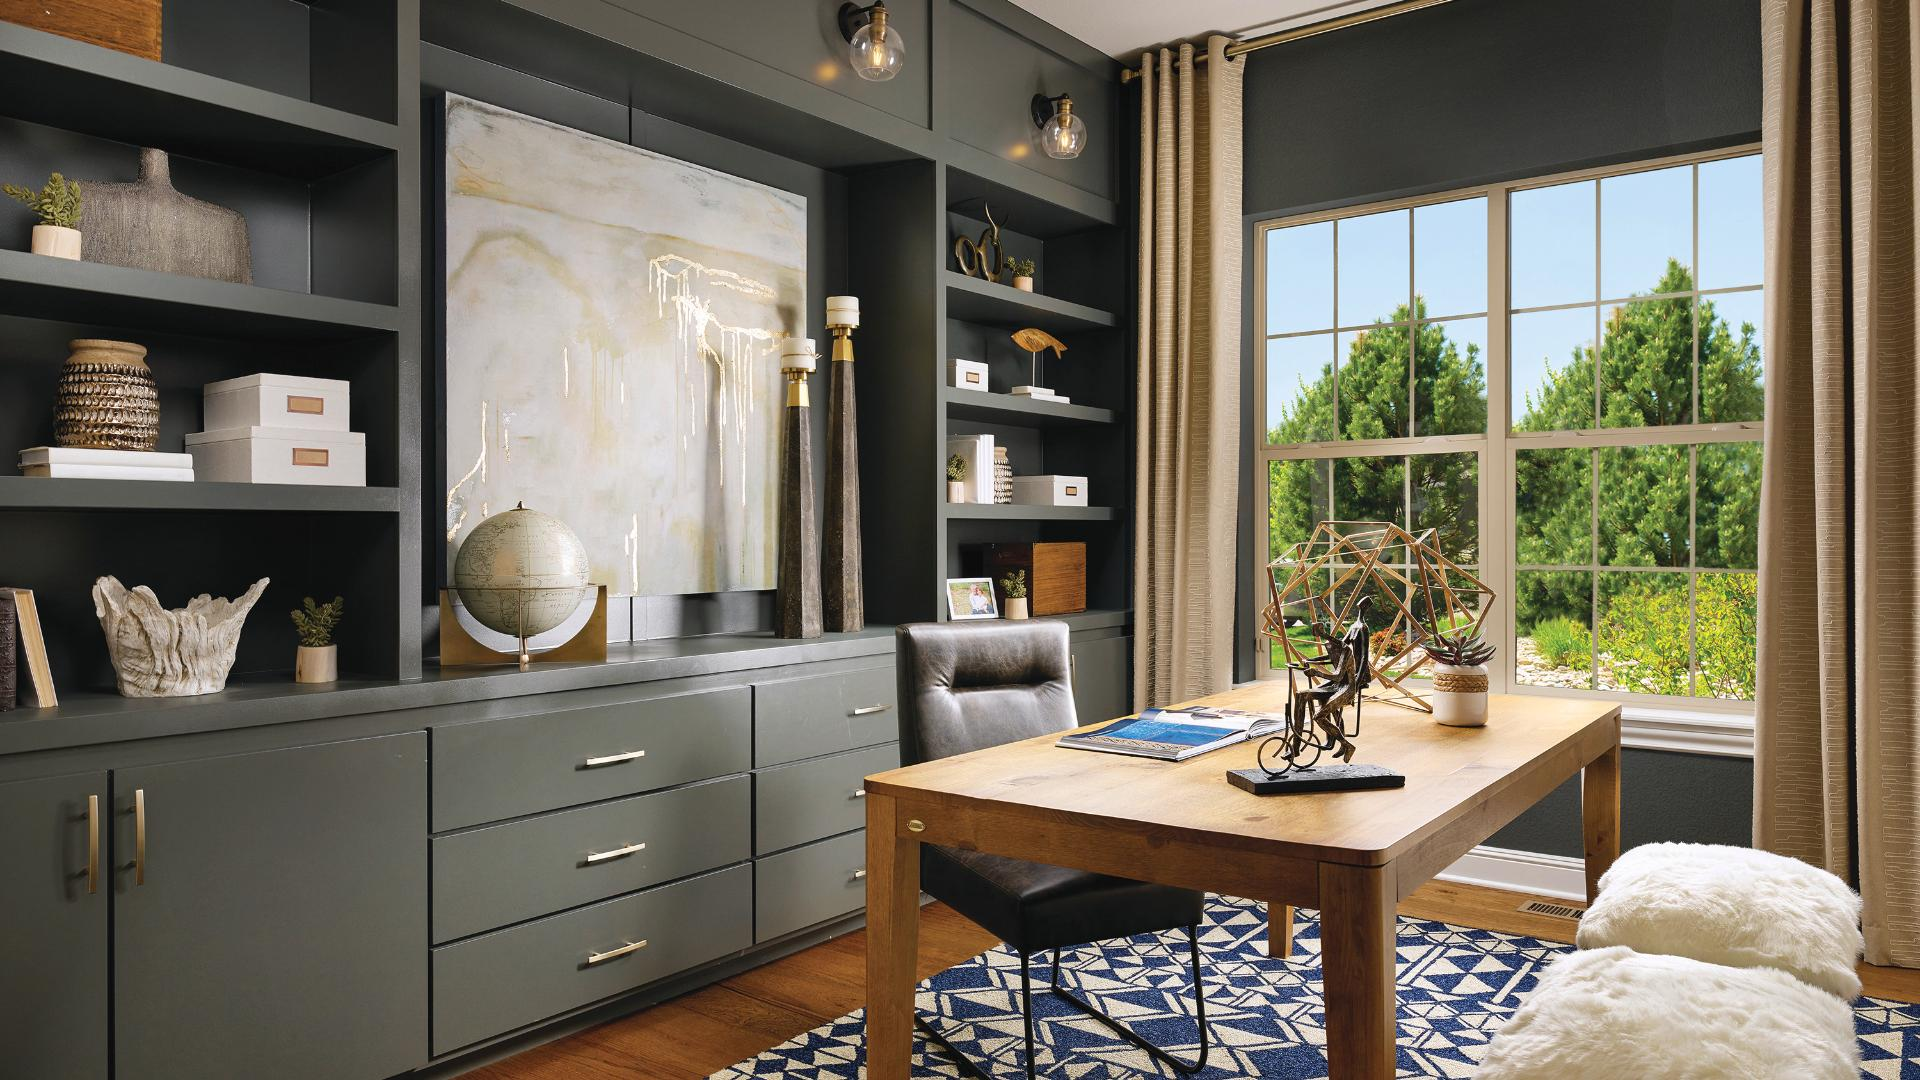 Personalize your home with spaces that fit your lifestyle